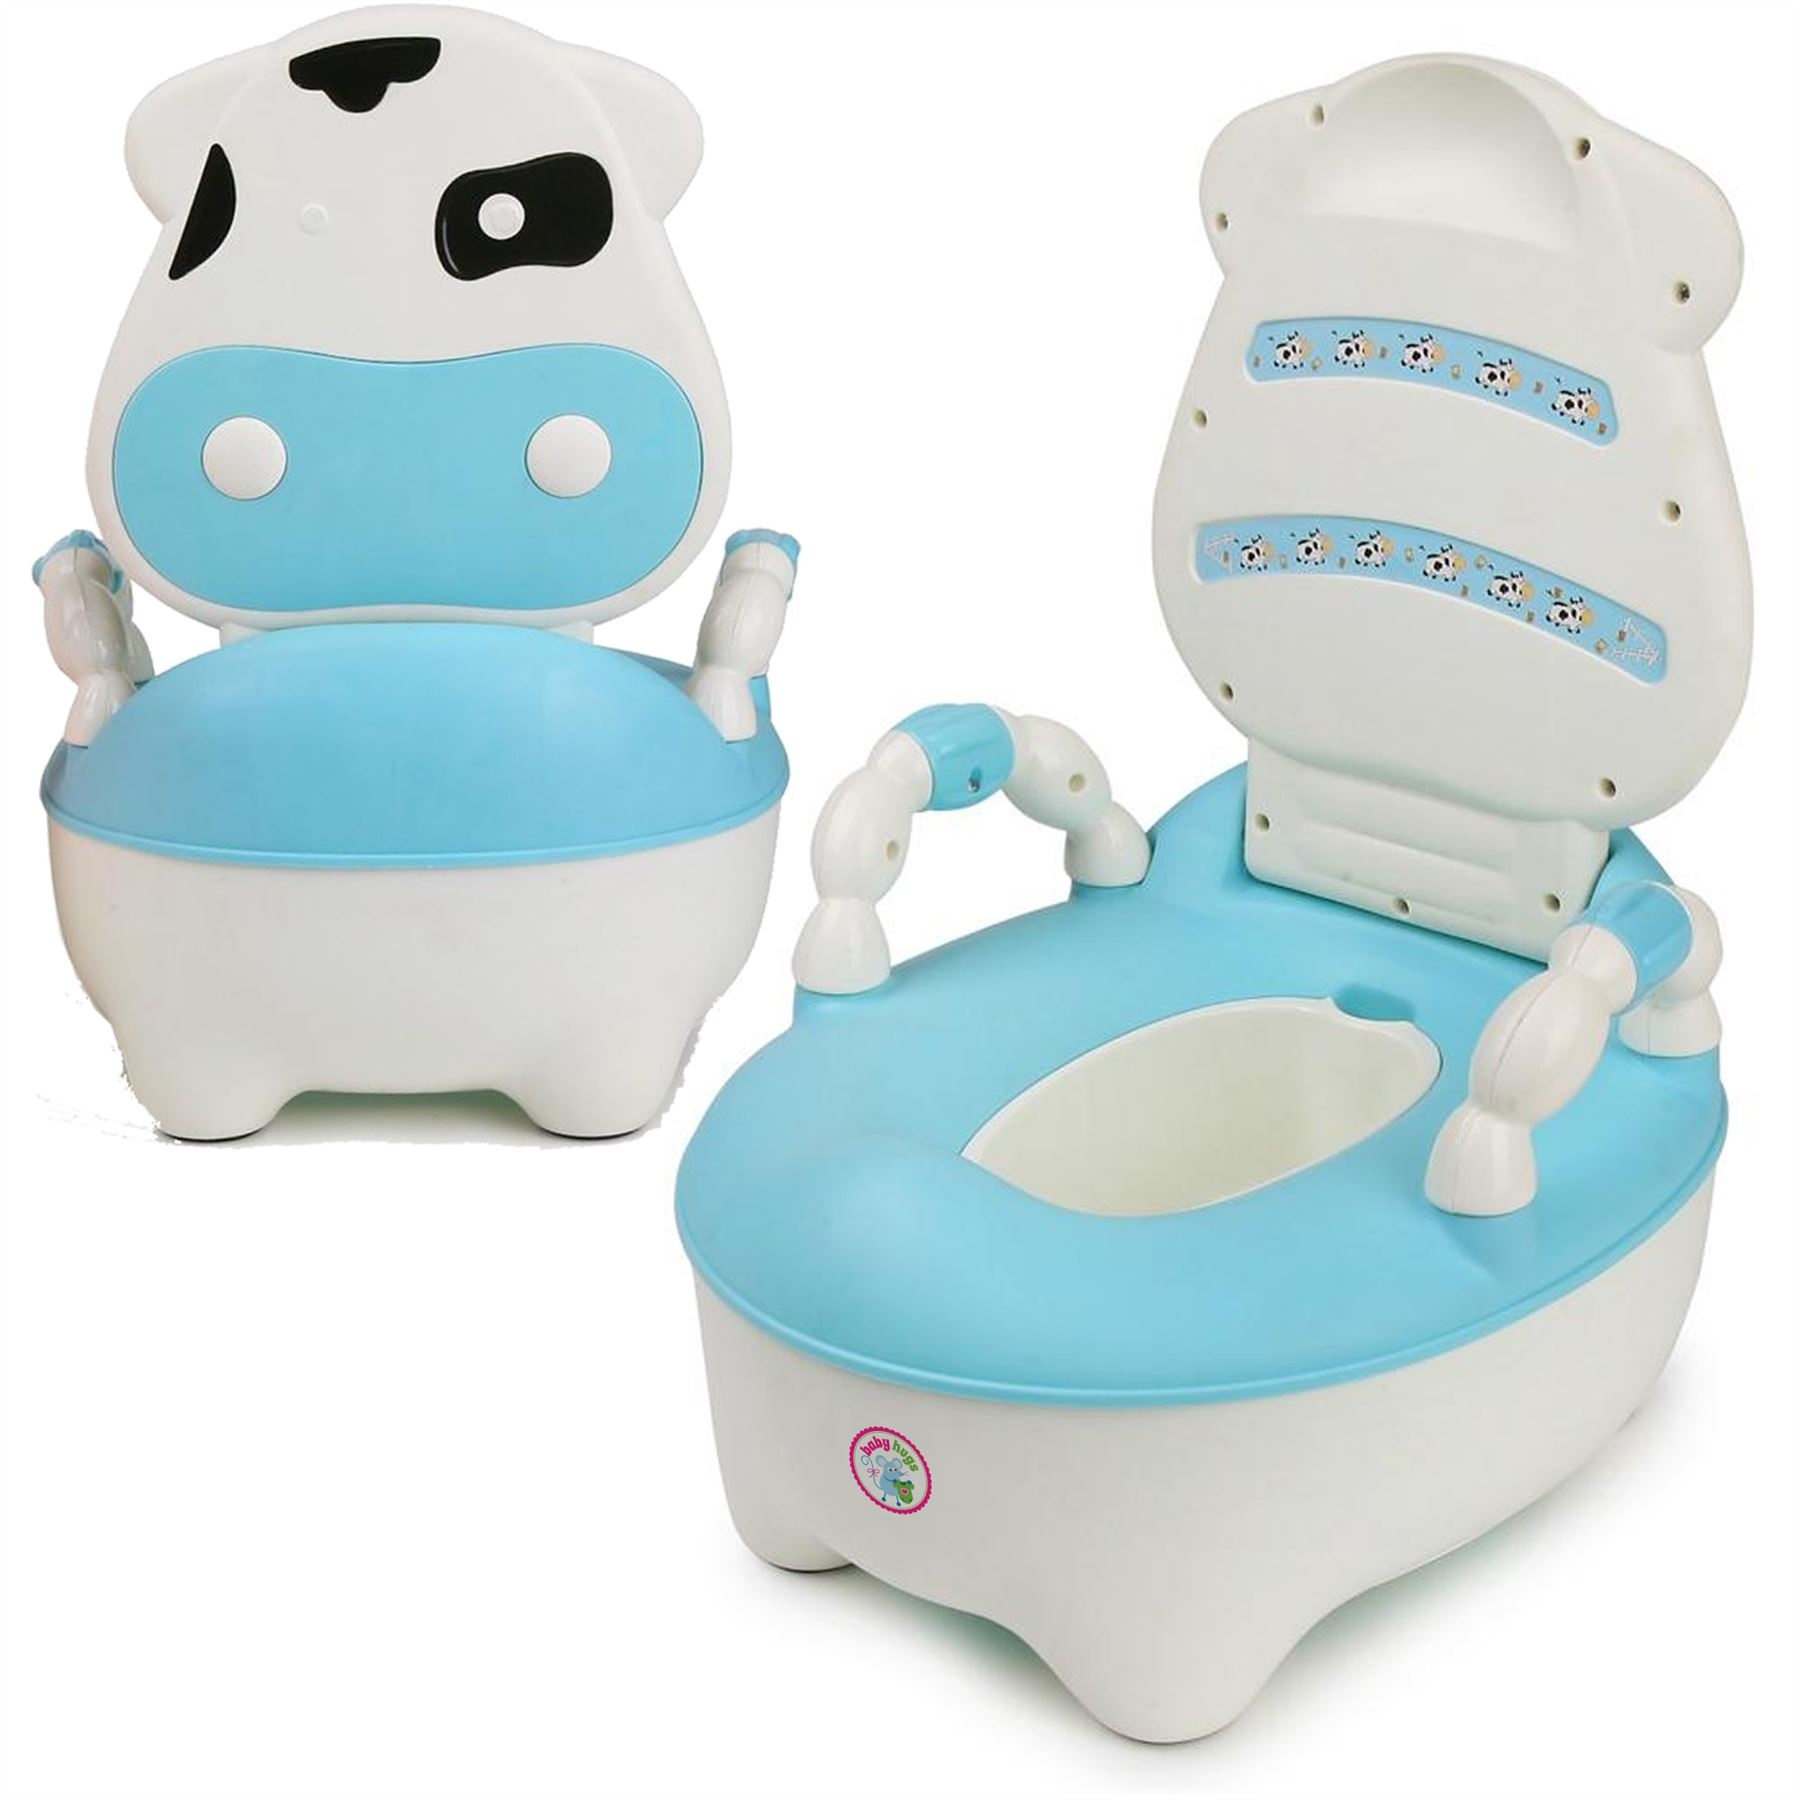 potty chair large child pub table with chairs baby toddler toilet training seat 2 step ladder